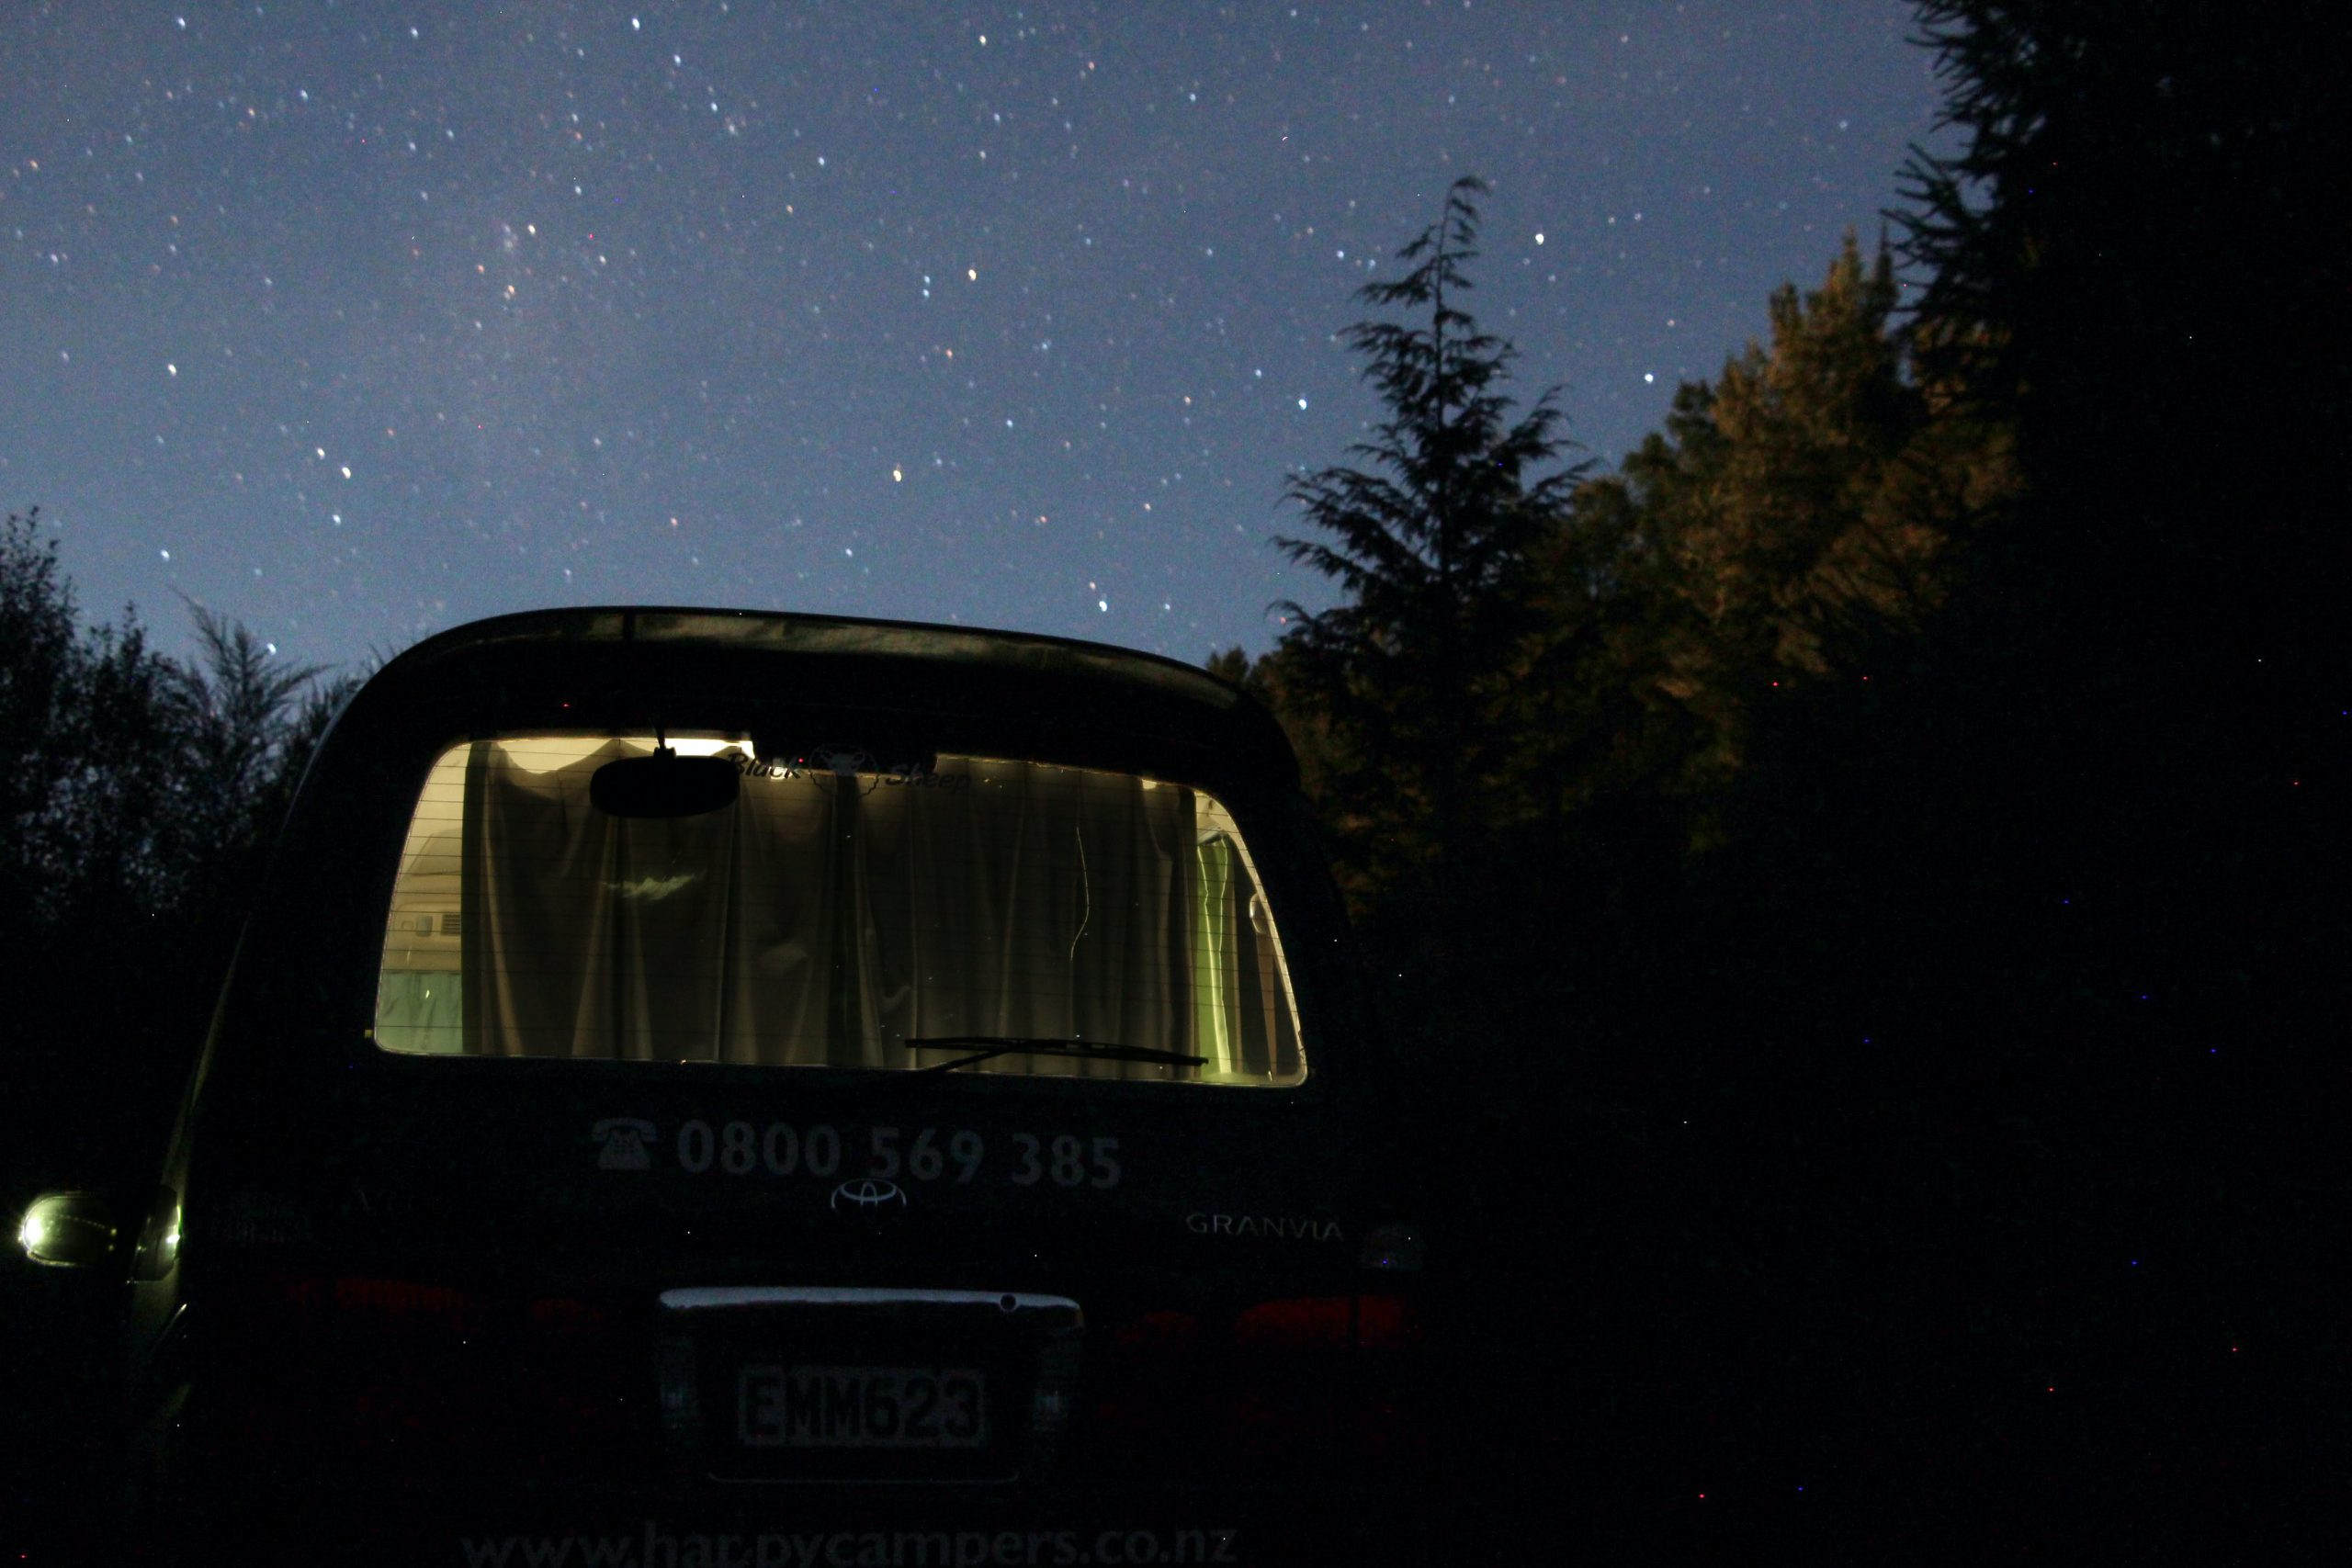 a campervan under the stars with hanging curtains in the window